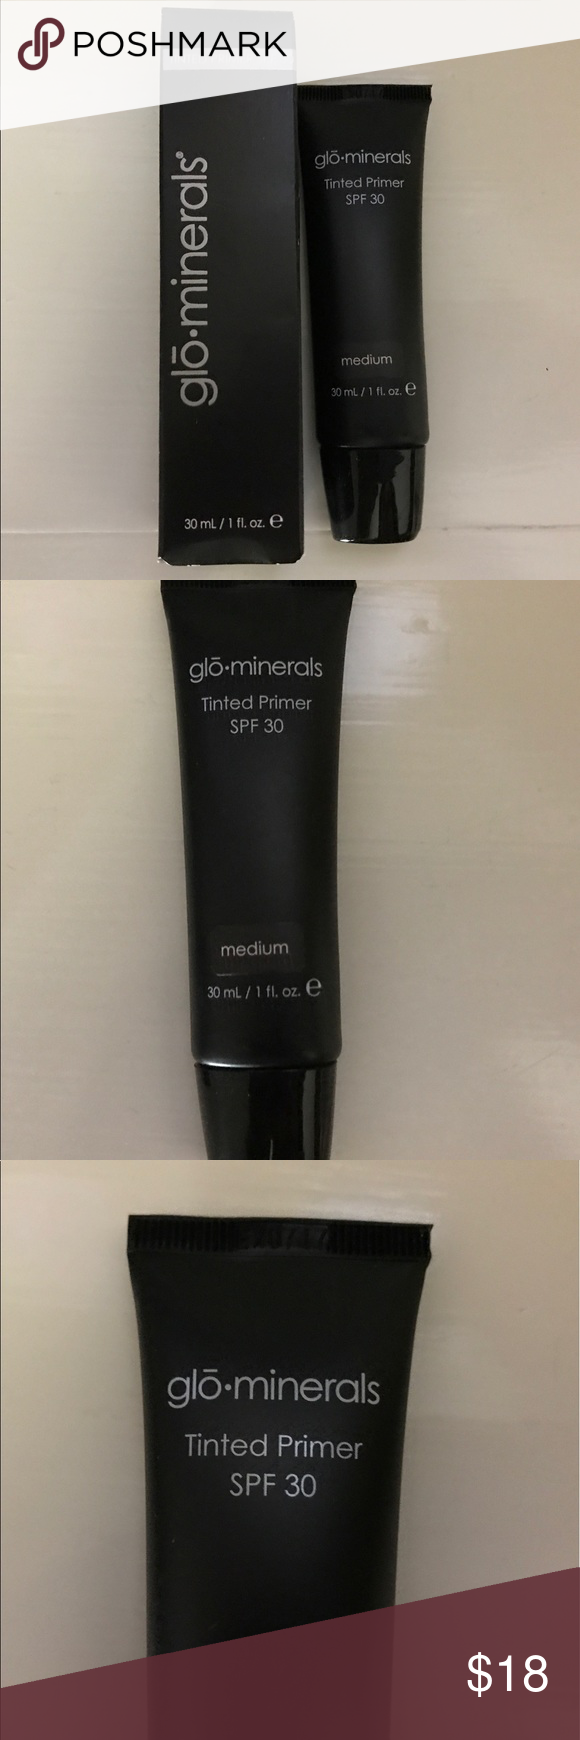 Glo•minerals SPF 30 Tinted Medium Face Primer Brand new in